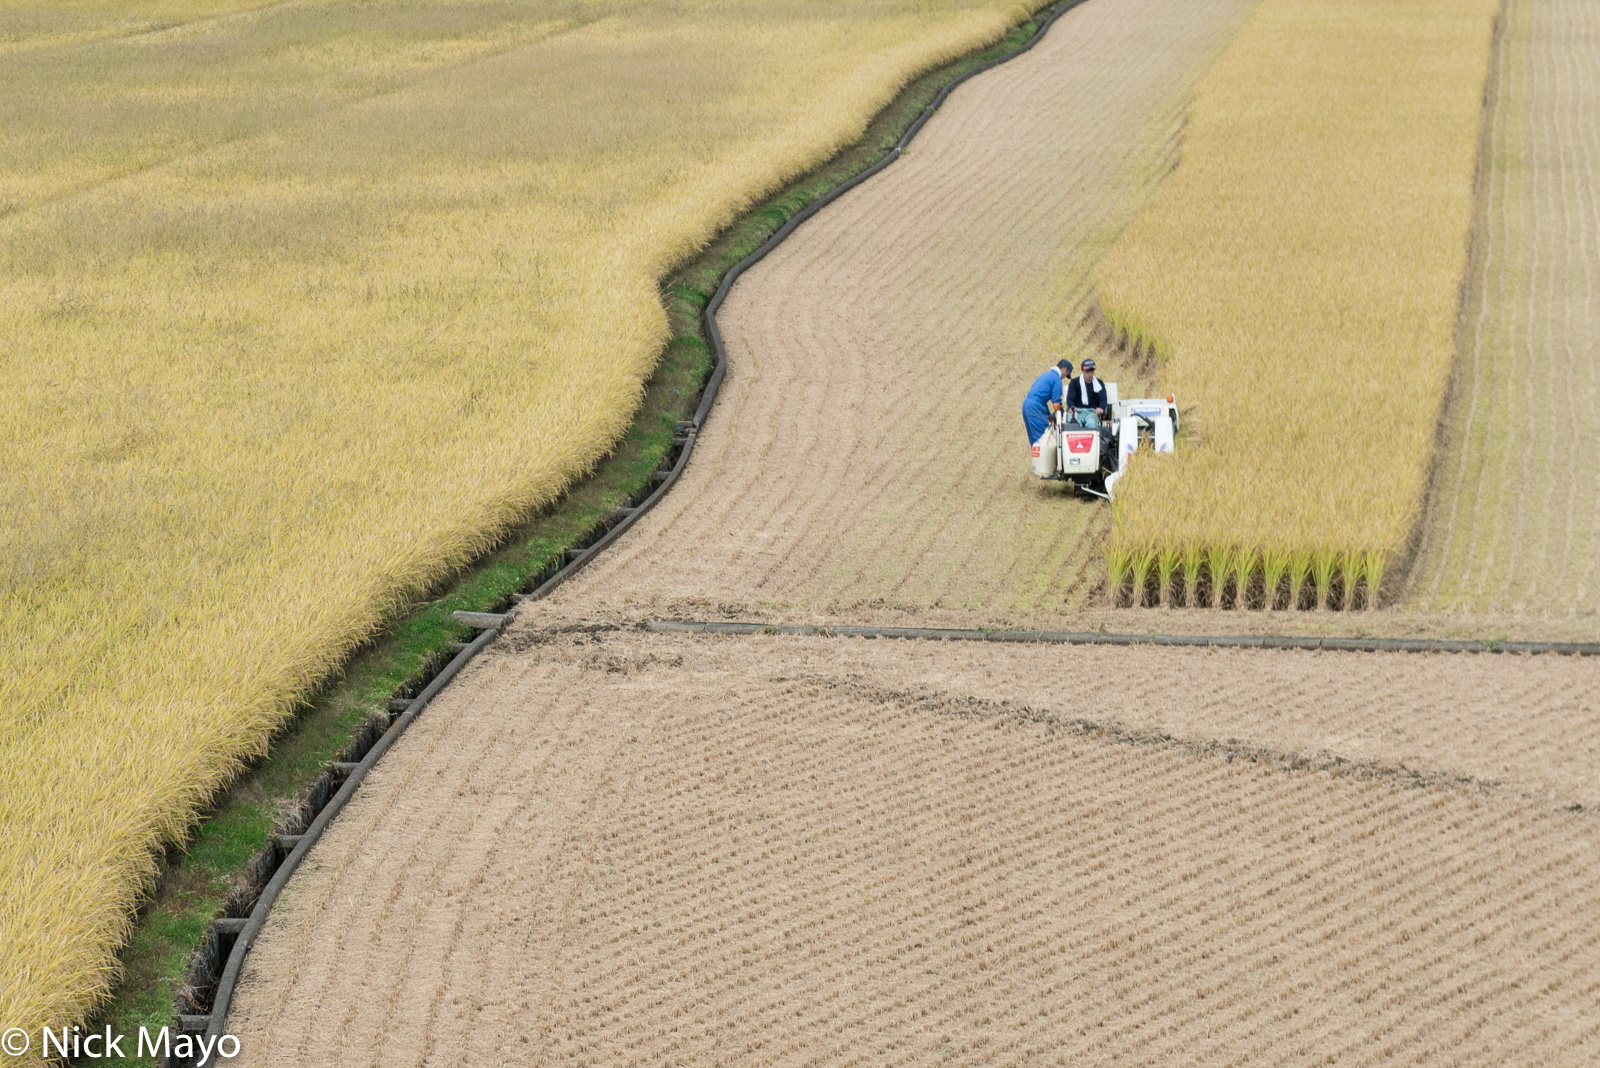 Harvesting,Japan,Kyushu,Paddy, photo